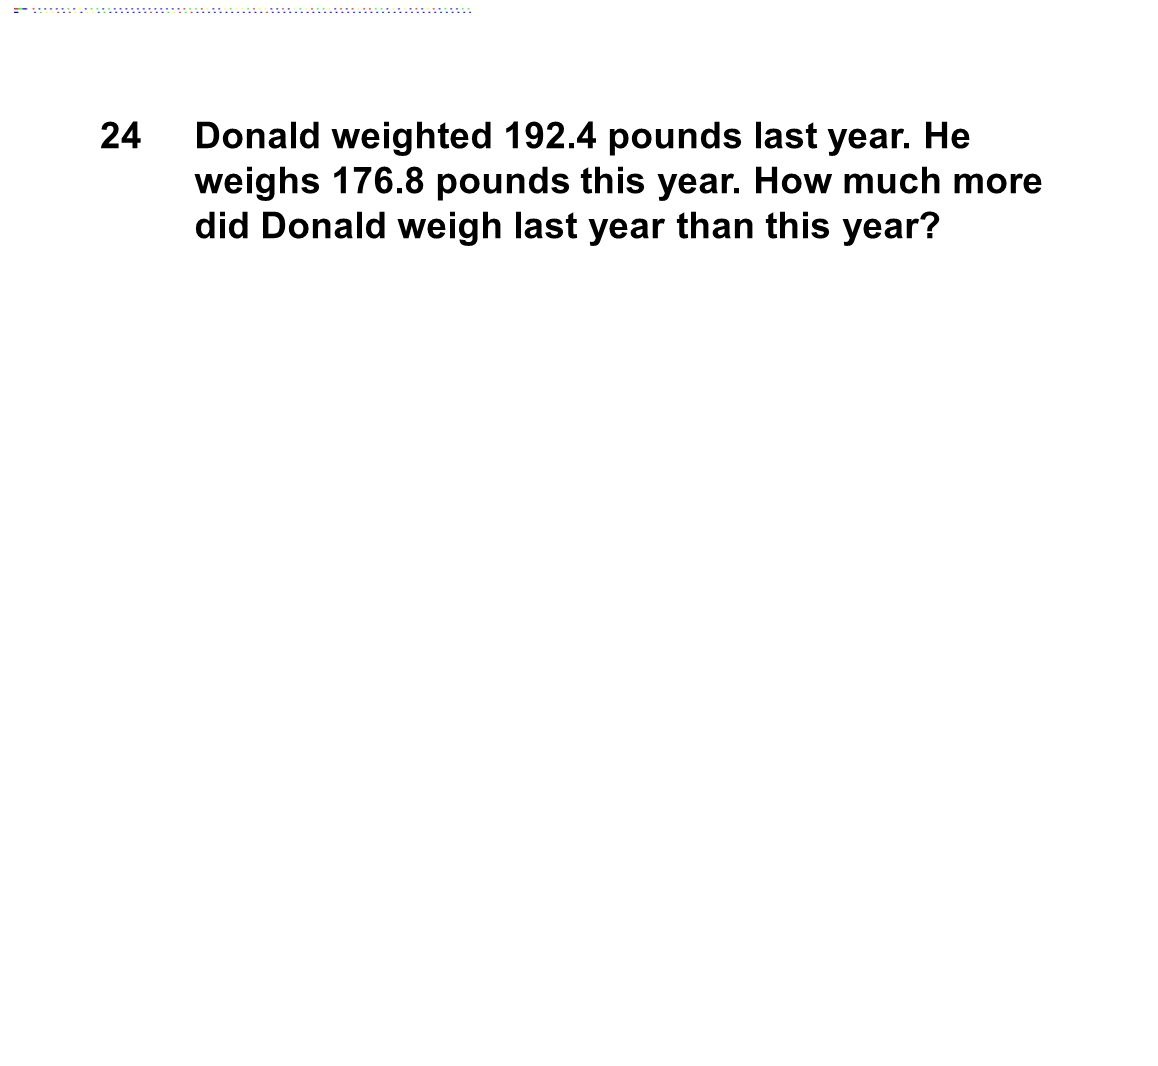 24 Donald weighted 192.4 pounds last year. He weighs 176.8 pounds this year.